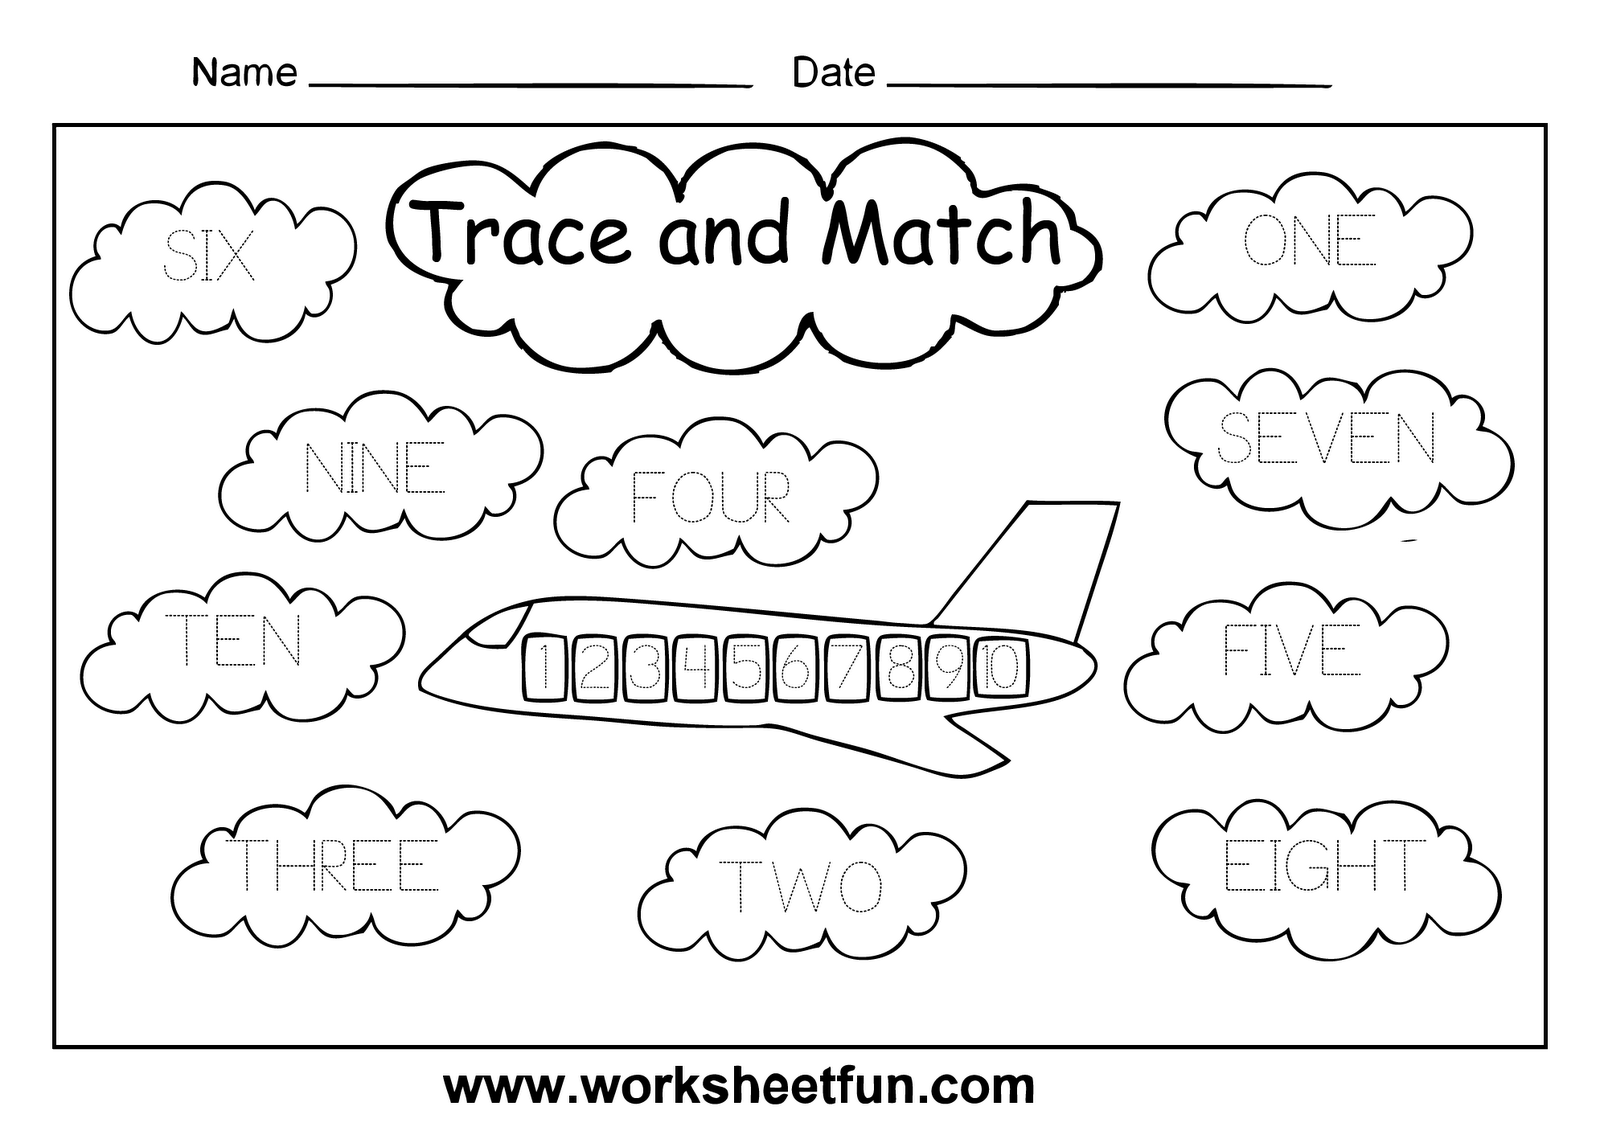 Weirdmailus  Fascinating Worksheet Numbers    Reocurent With Glamorous Pre K Printable Worksheets Besides Eftps Direct Payment Worksheet Furthermore Function Transformations Worksheet With Amazing Th Grade English Worksheets Also Biology Worksheet Answers In Addition Science Worksheets For Th Grade And Clock Worksheet As Well As Triangle Congruence Proofs Worksheet Additionally Chemistry Balancing Equations Worksheet From Reocurentcom With Weirdmailus  Glamorous Worksheet Numbers    Reocurent With Amazing Pre K Printable Worksheets Besides Eftps Direct Payment Worksheet Furthermore Function Transformations Worksheet And Fascinating Th Grade English Worksheets Also Biology Worksheet Answers In Addition Science Worksheets For Th Grade From Reocurentcom